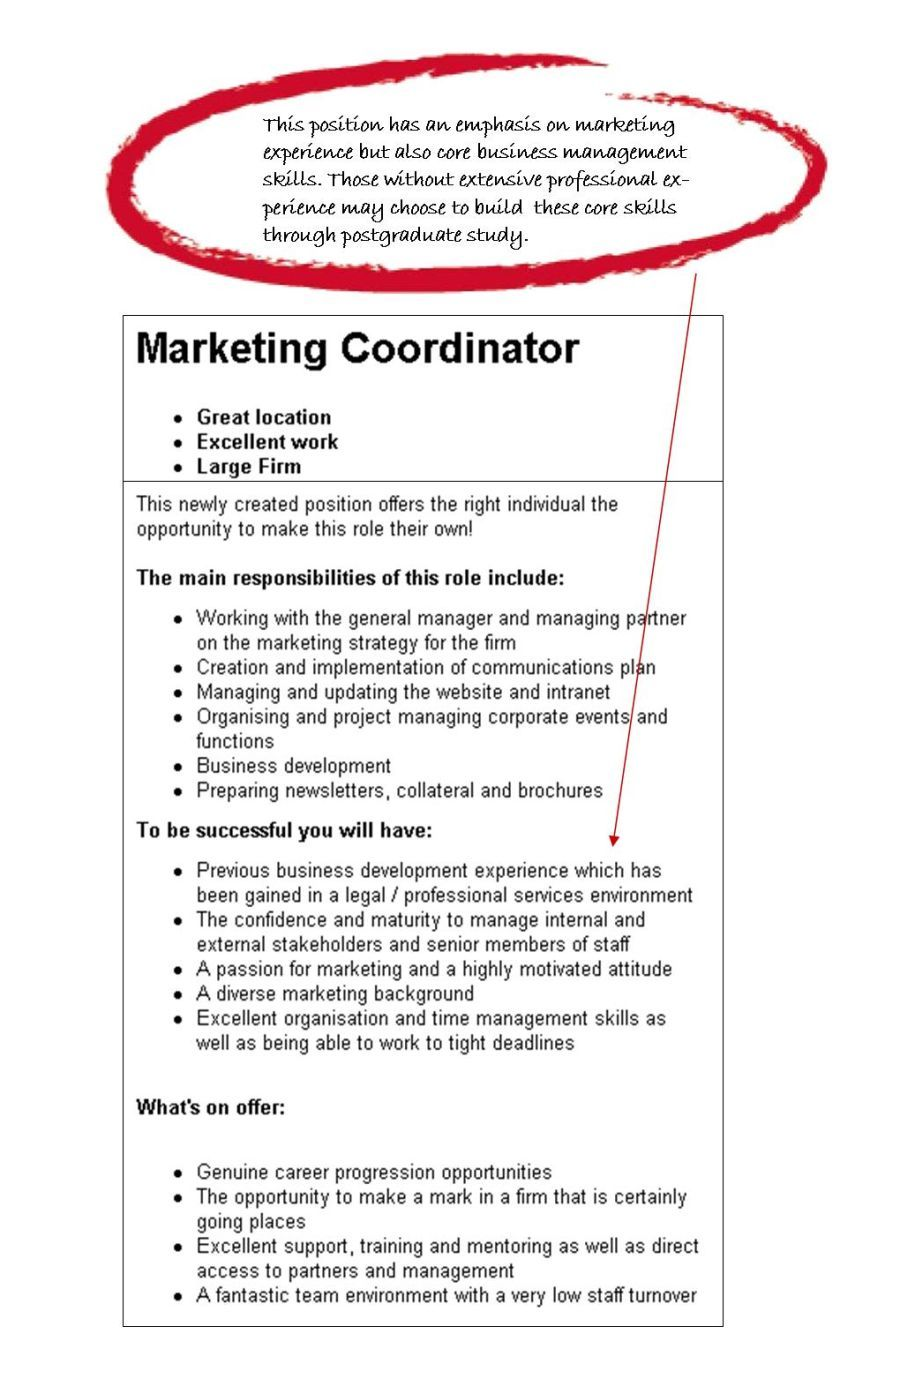 Job Objective On Resume Objectives For Resume  Resume  Pinterest  Resume Objective And